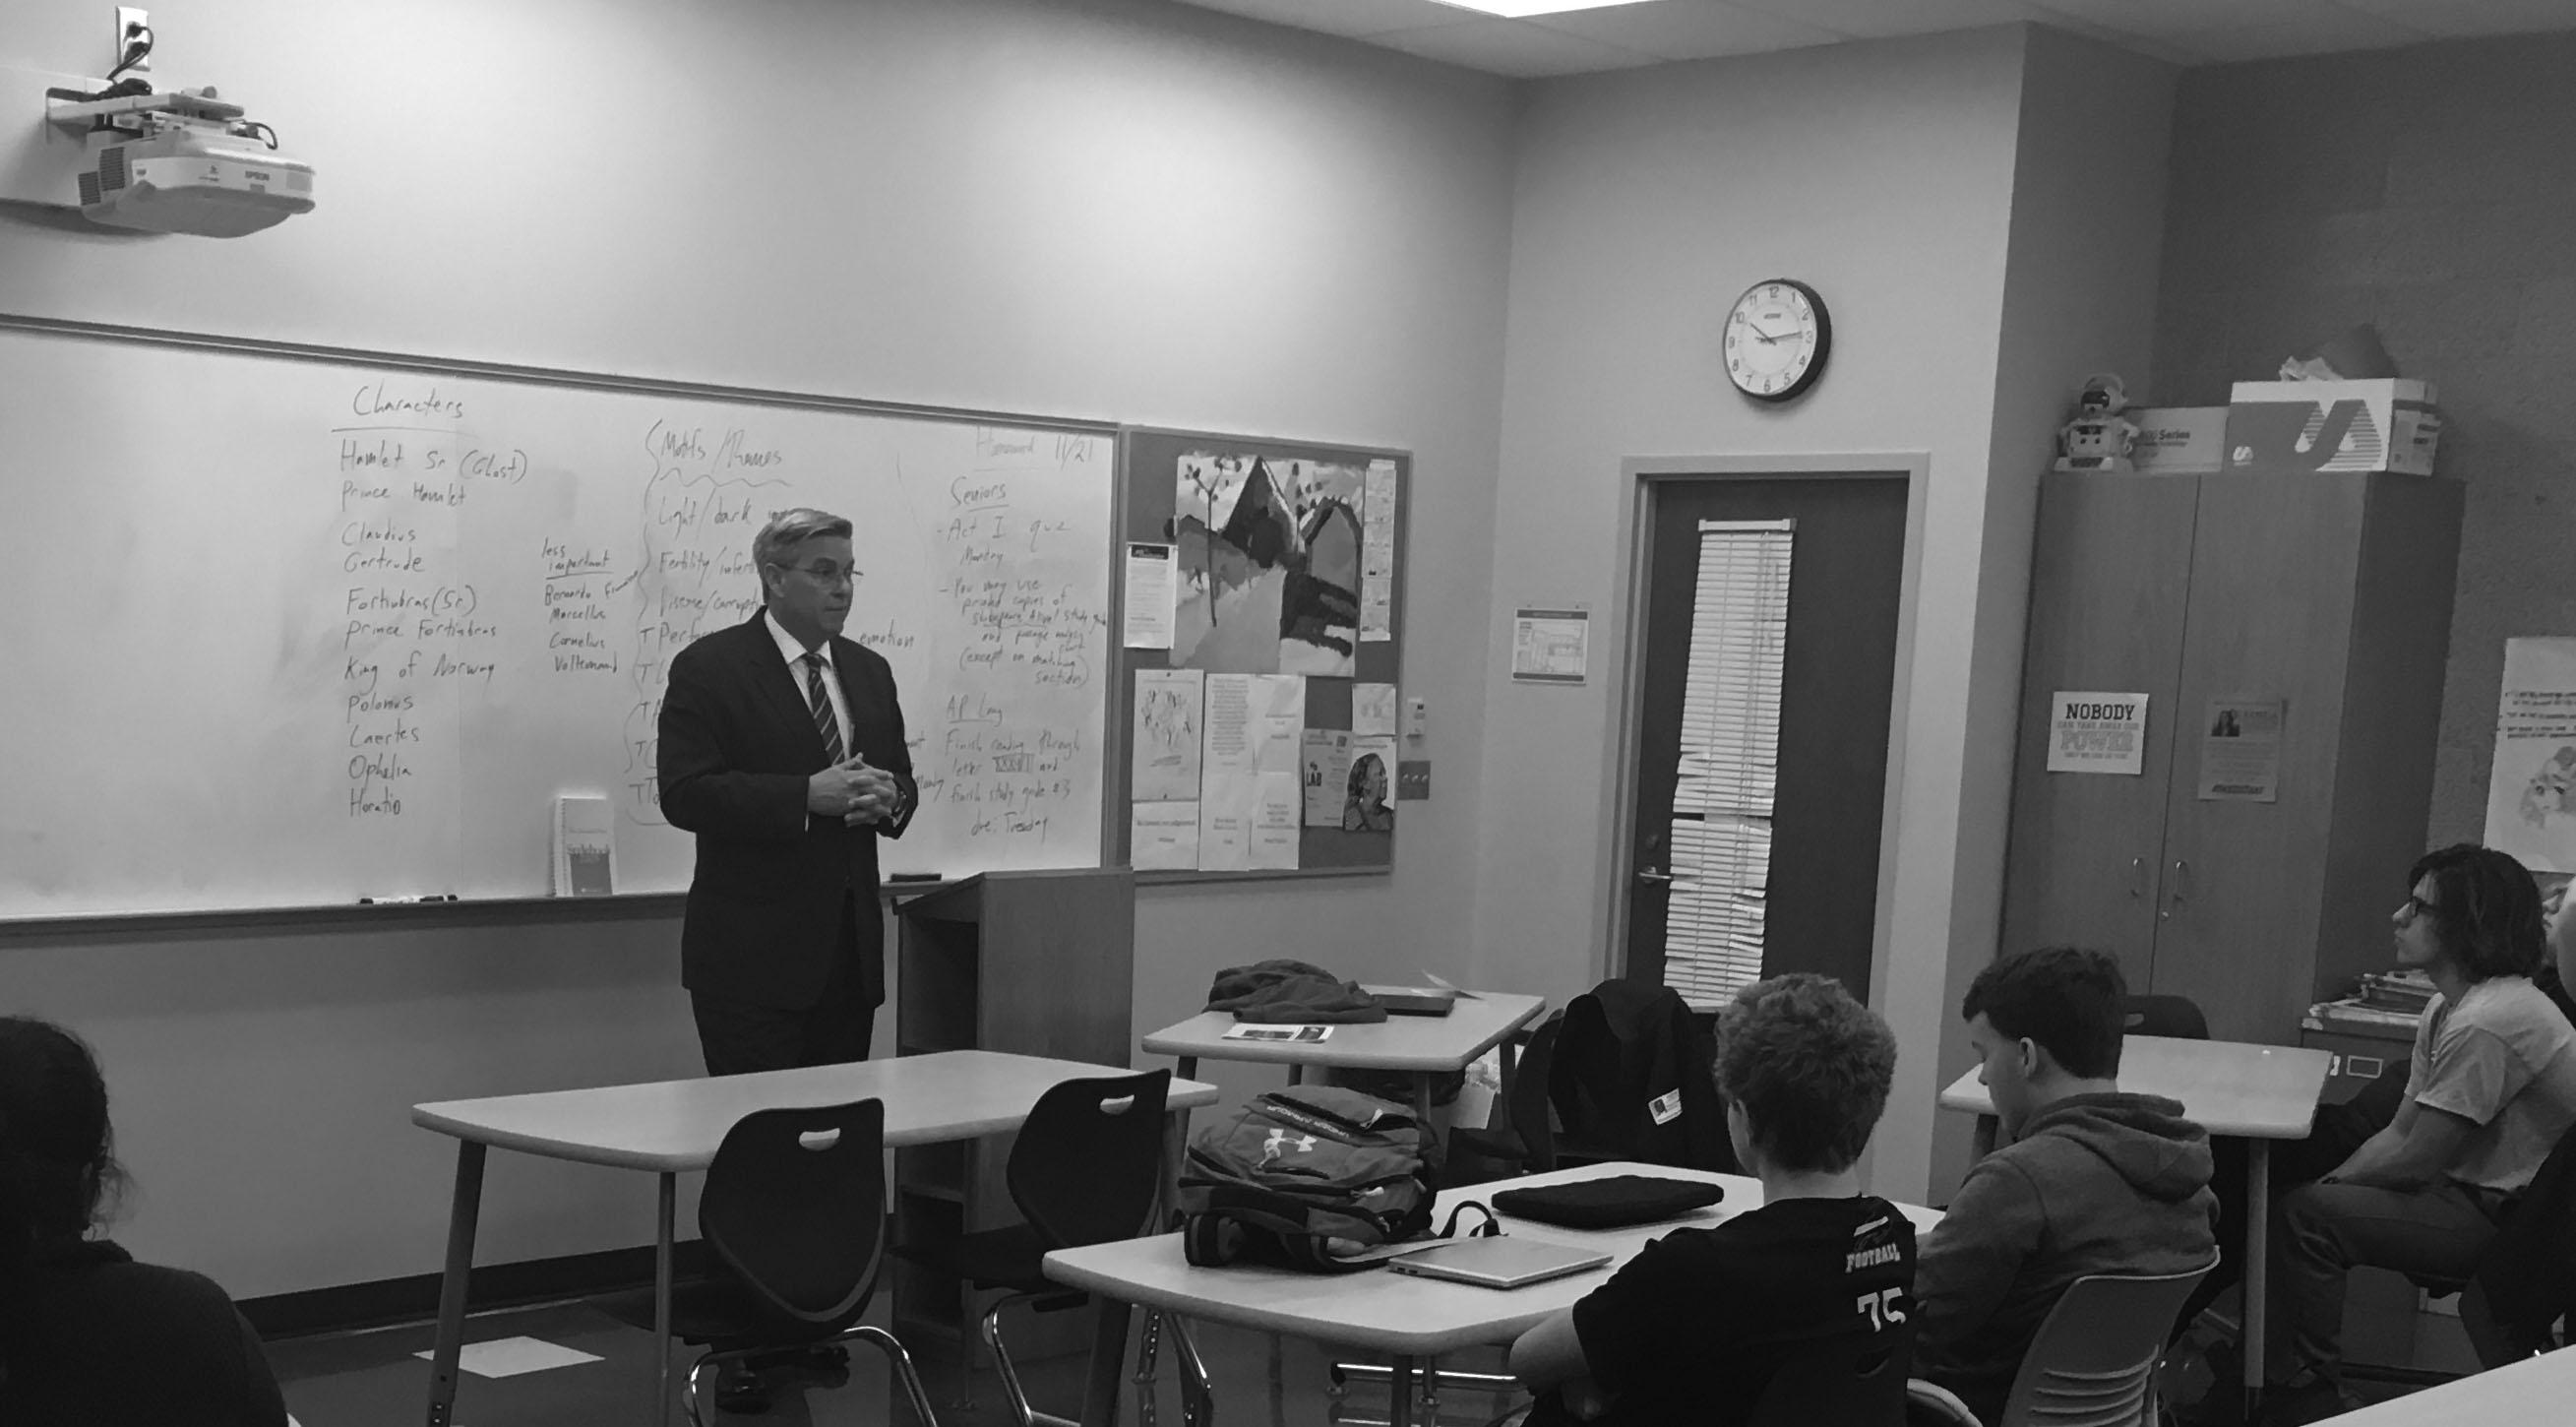 Duane Pohlman speaks to the journalism class about his work. Photo by Spencer Handlin.